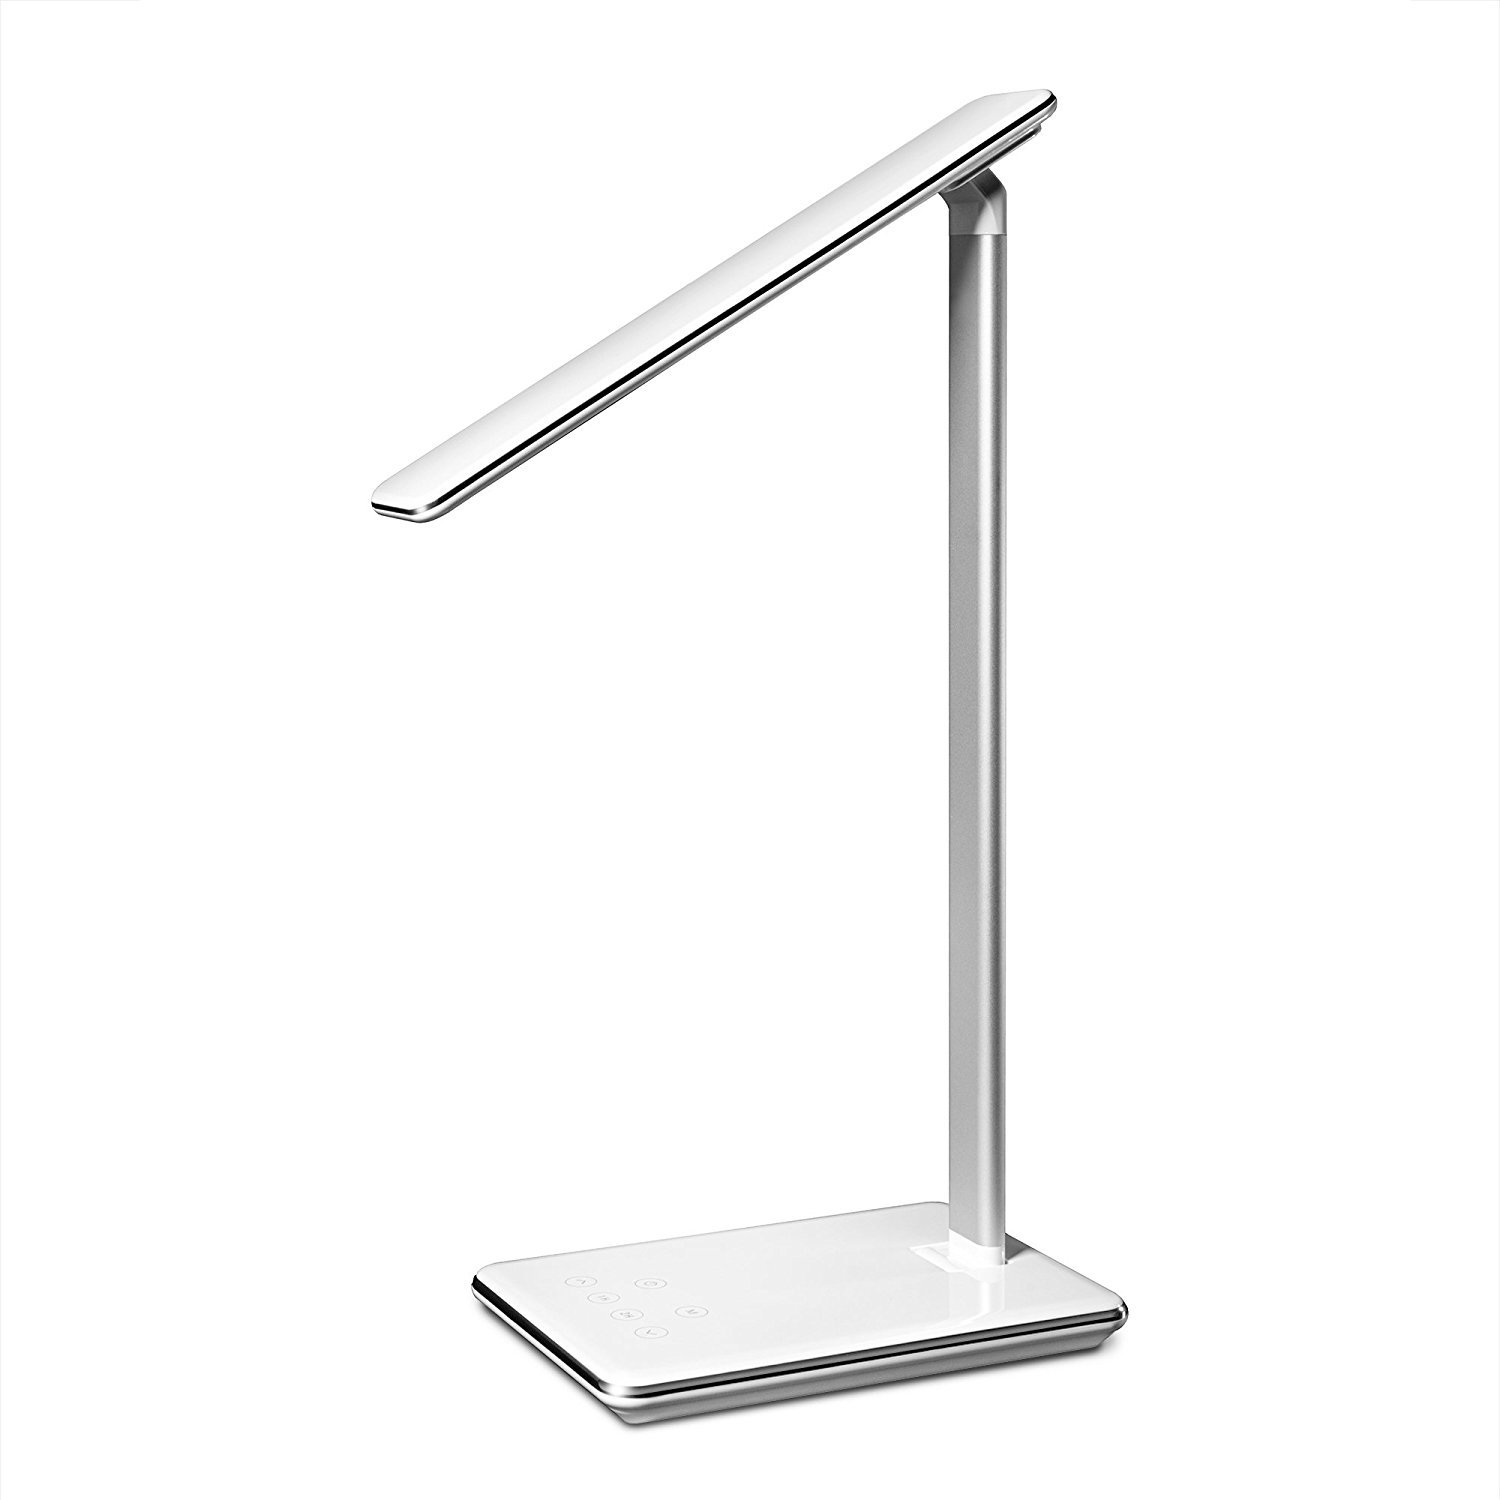 Beta Eye Caring Office Lamp, Brightness Adjustable LED Table Lamps, with USB Charging Port,Touch Control,4 Color Temperature,Timing Power Off,for Office,Bedside,Computer,Reading,Studying